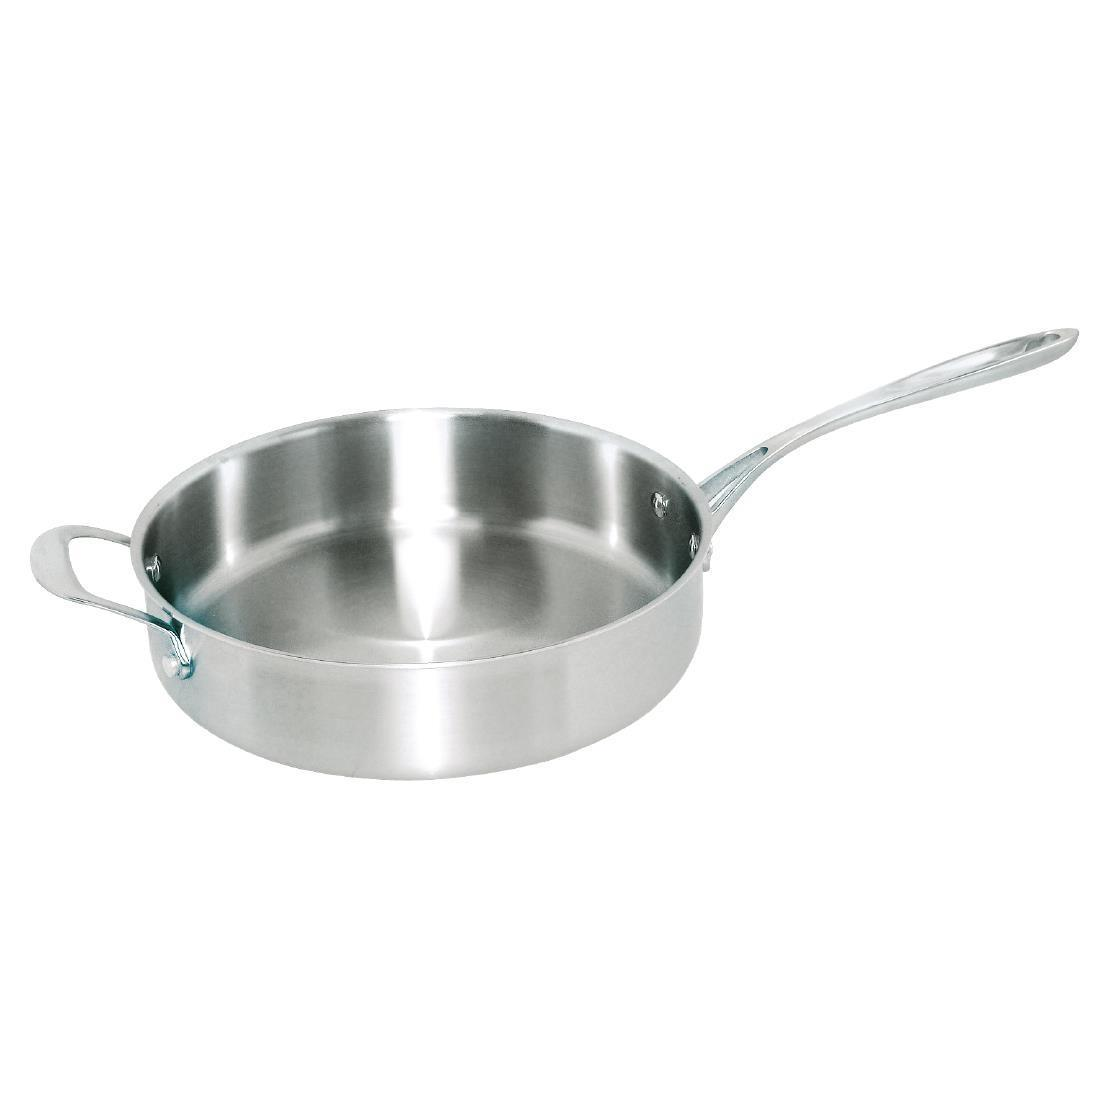 Vogue Tri Wall Saute Pan 280mm - Each - GG032